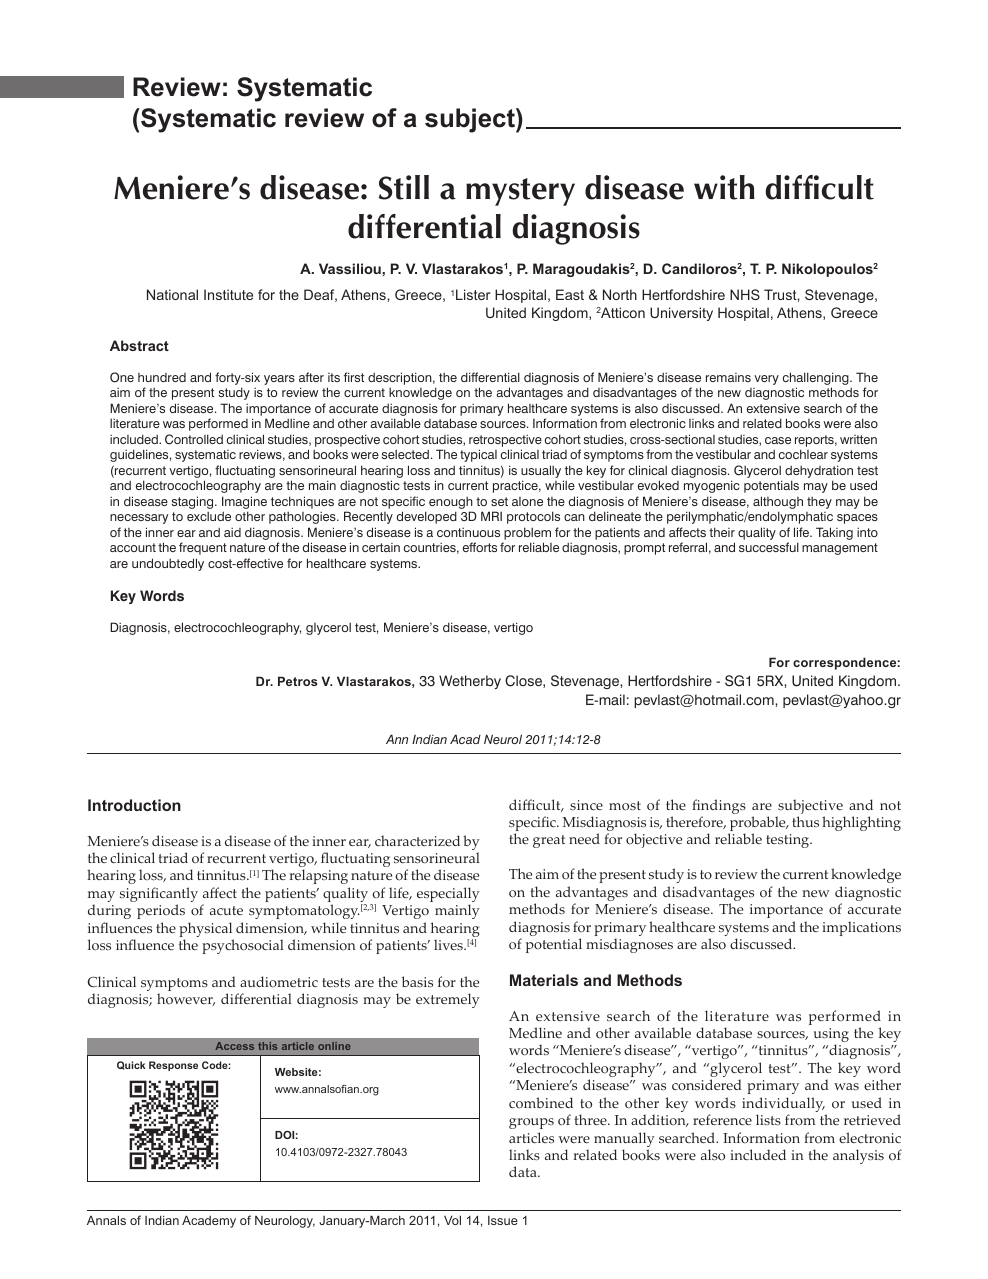 Meniere S Disease Still A Mystery Disease With Difficult Differential Diagnosis Topic Of Research Paper In Clinical Medicine Download Scholarly Article Pdf And Read For Free On Cyberleninka Open Science Hub